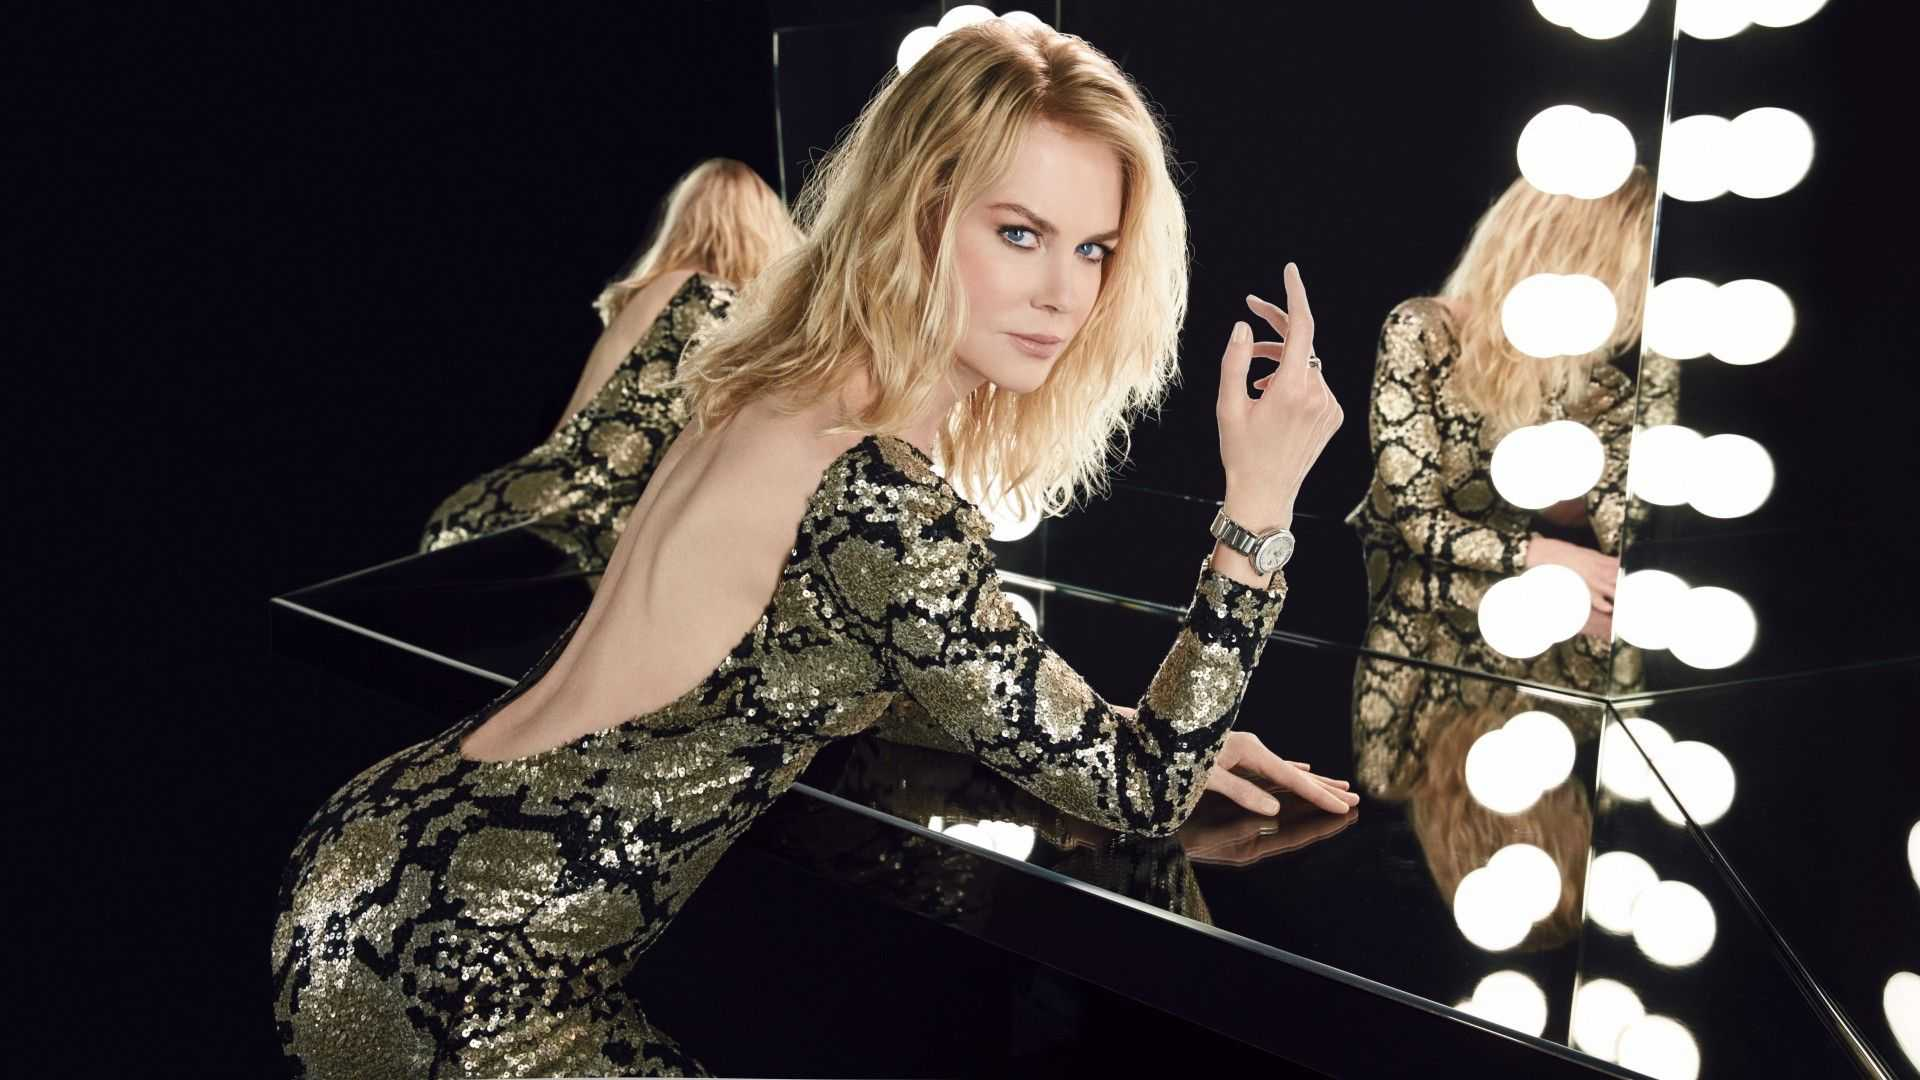 Nicole Kidman Phone number, Email Id, Fanmail, Instagram, Tiktok, and Contact Details